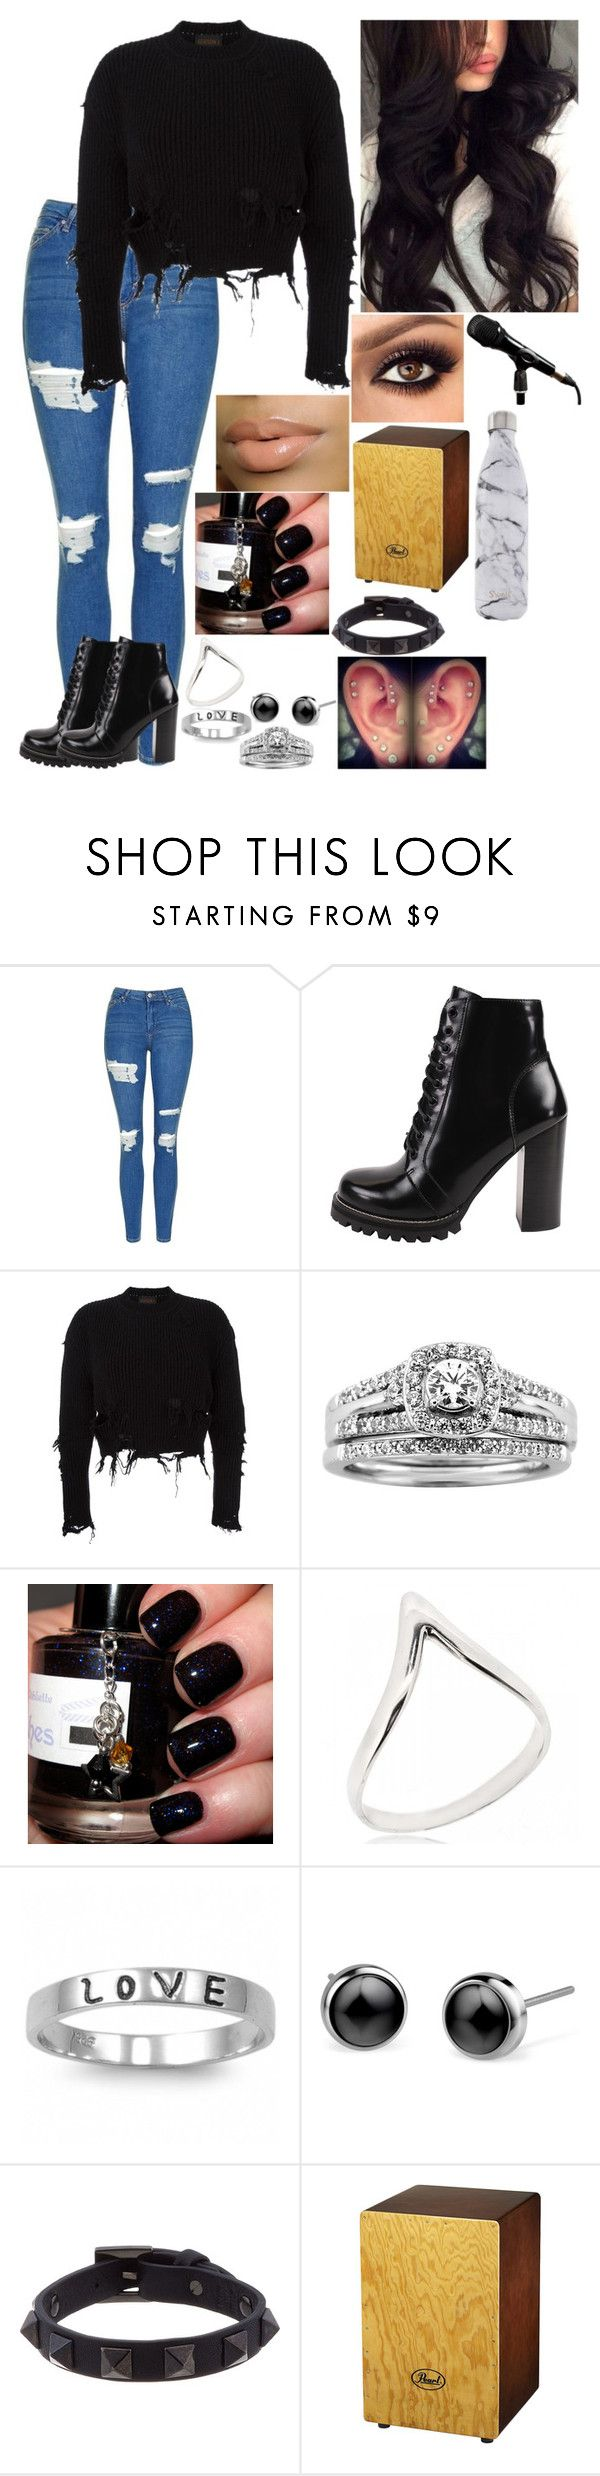 """""""Untitled #3005 - Concert in Oberhausen, Germany - 11/17/16"""" by nicolerunnels ❤ liked on Polyvore featuring Topshop, Jeffrey Campbell, adidas Originals, A.Jaffe, Fantasy Jewelry Box, J.A.K., Valentino and S'well"""